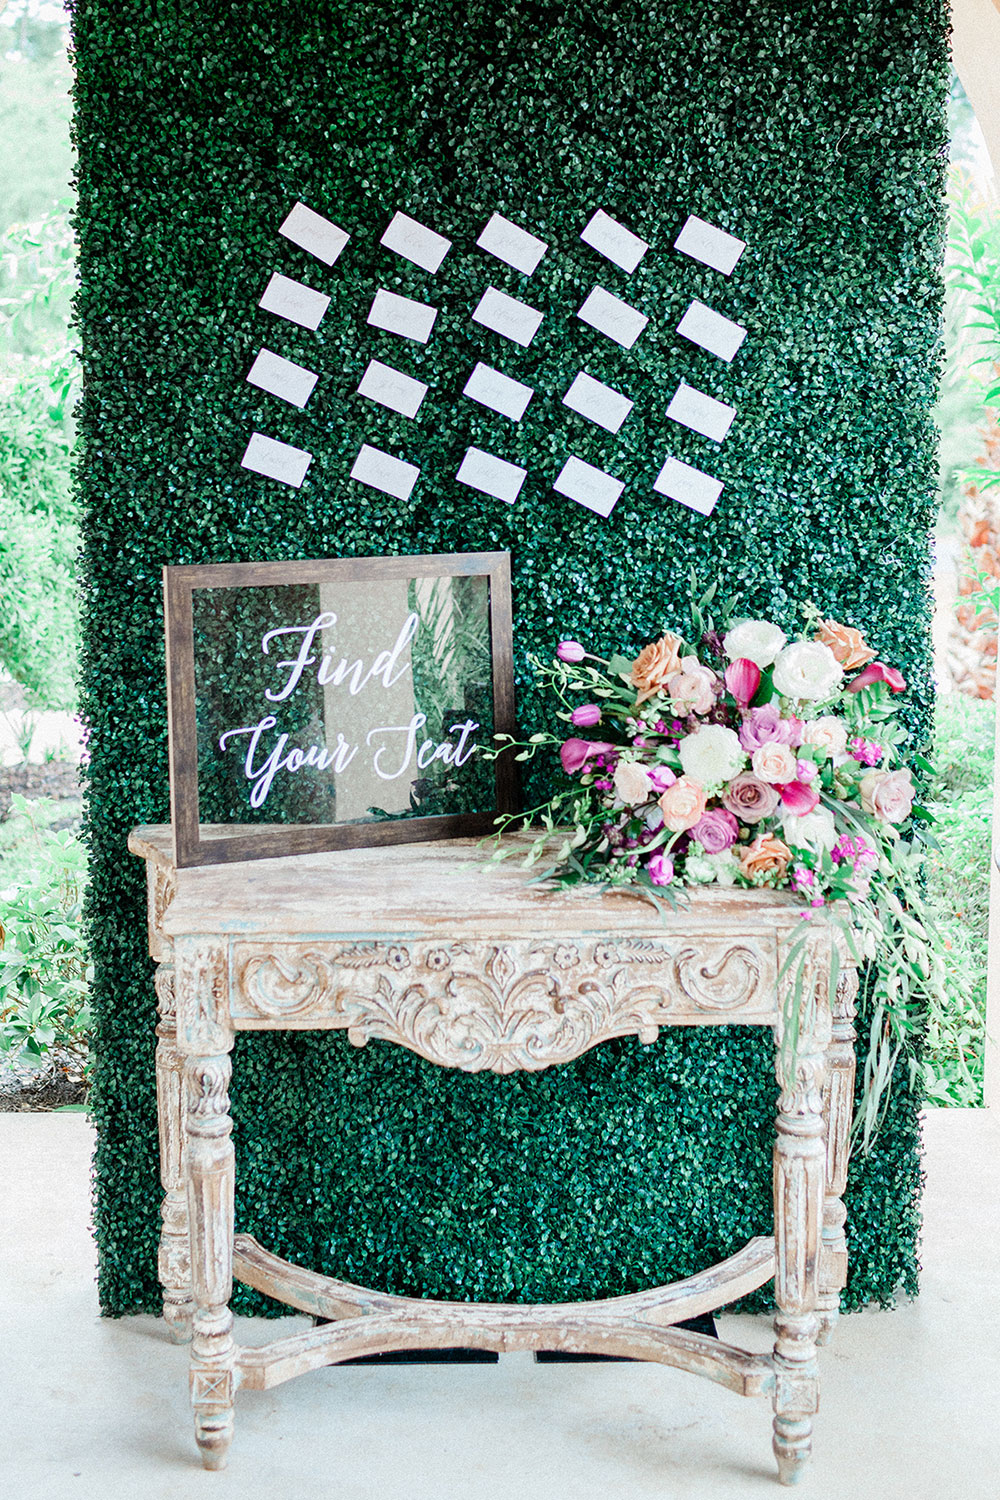 Wedding_Styled_Shoot_Madera_Estates_Texas_Place_Cards-4.jpg